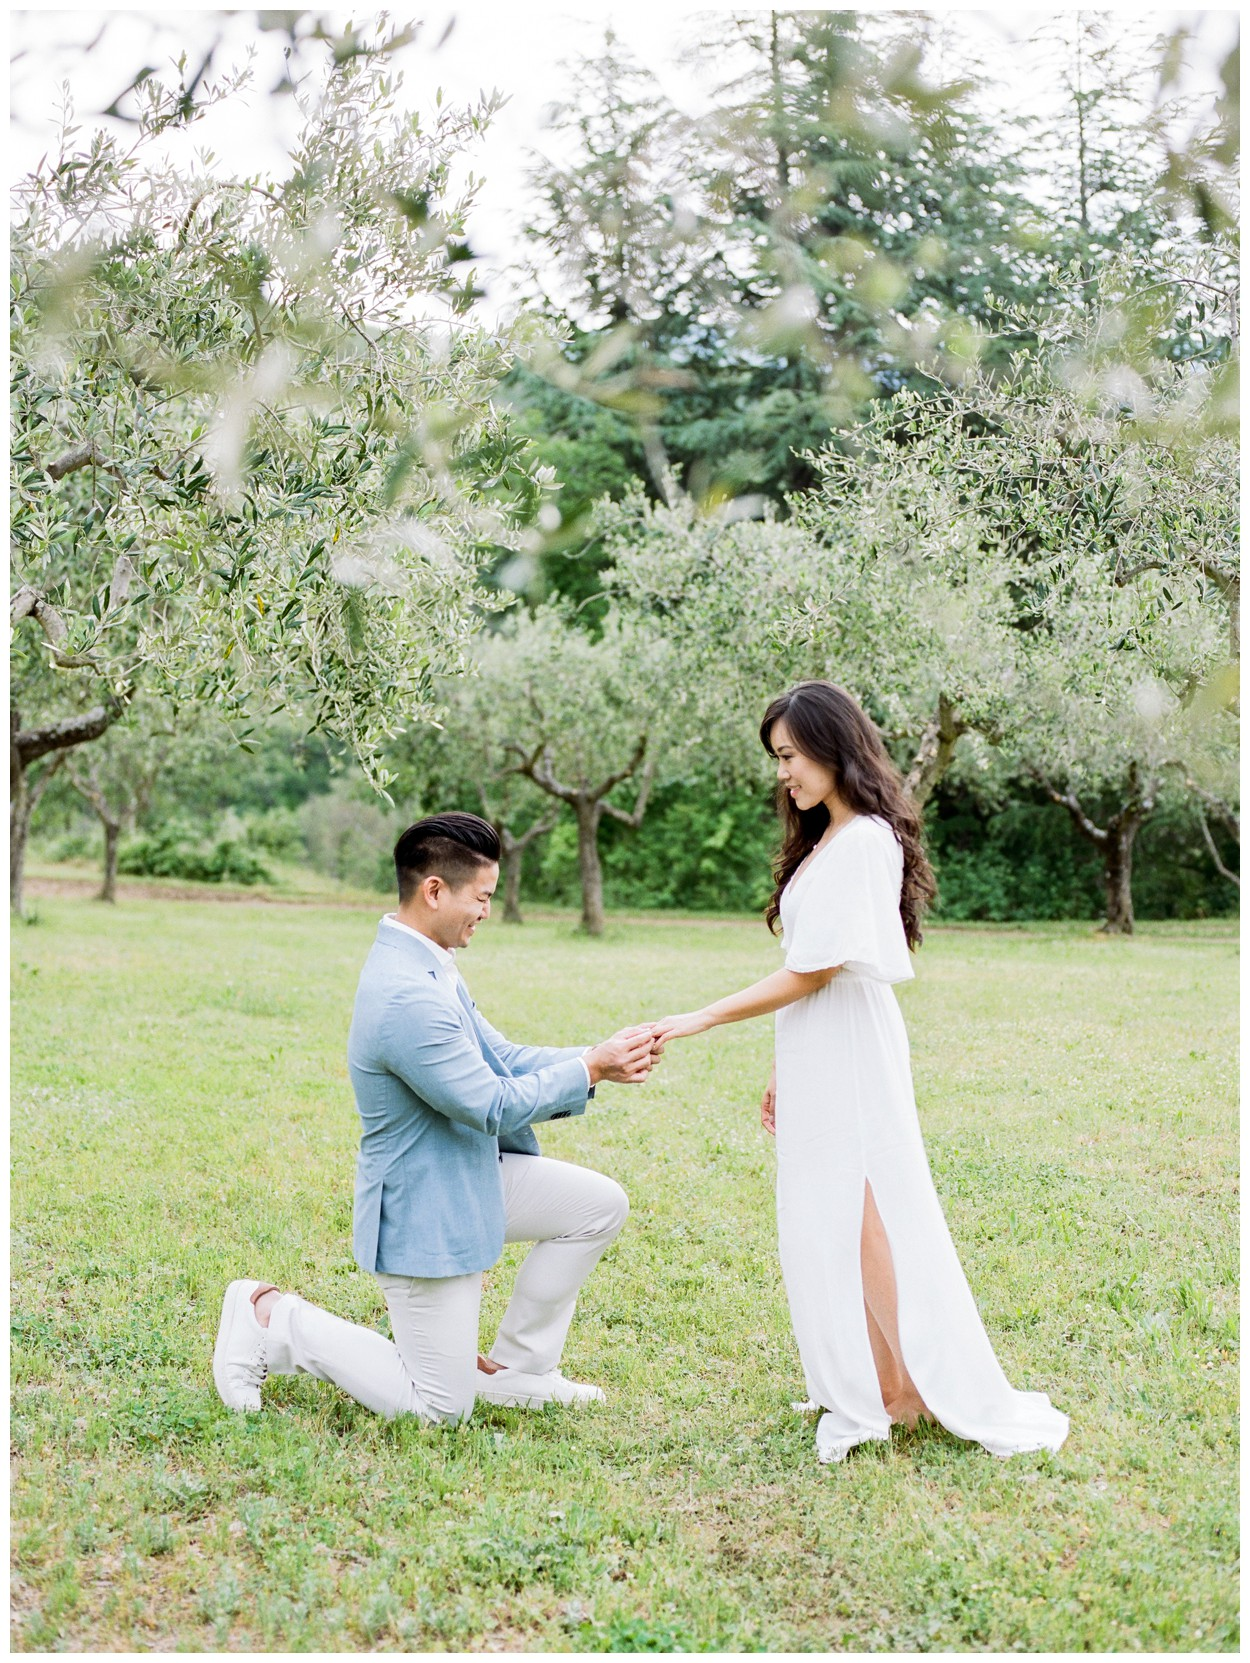 Spring Engagement at Villa Montanare in Cortona Tuscany, Italy by fine art wedding photographer Lissa Ryan Photography proposal in an olive grove